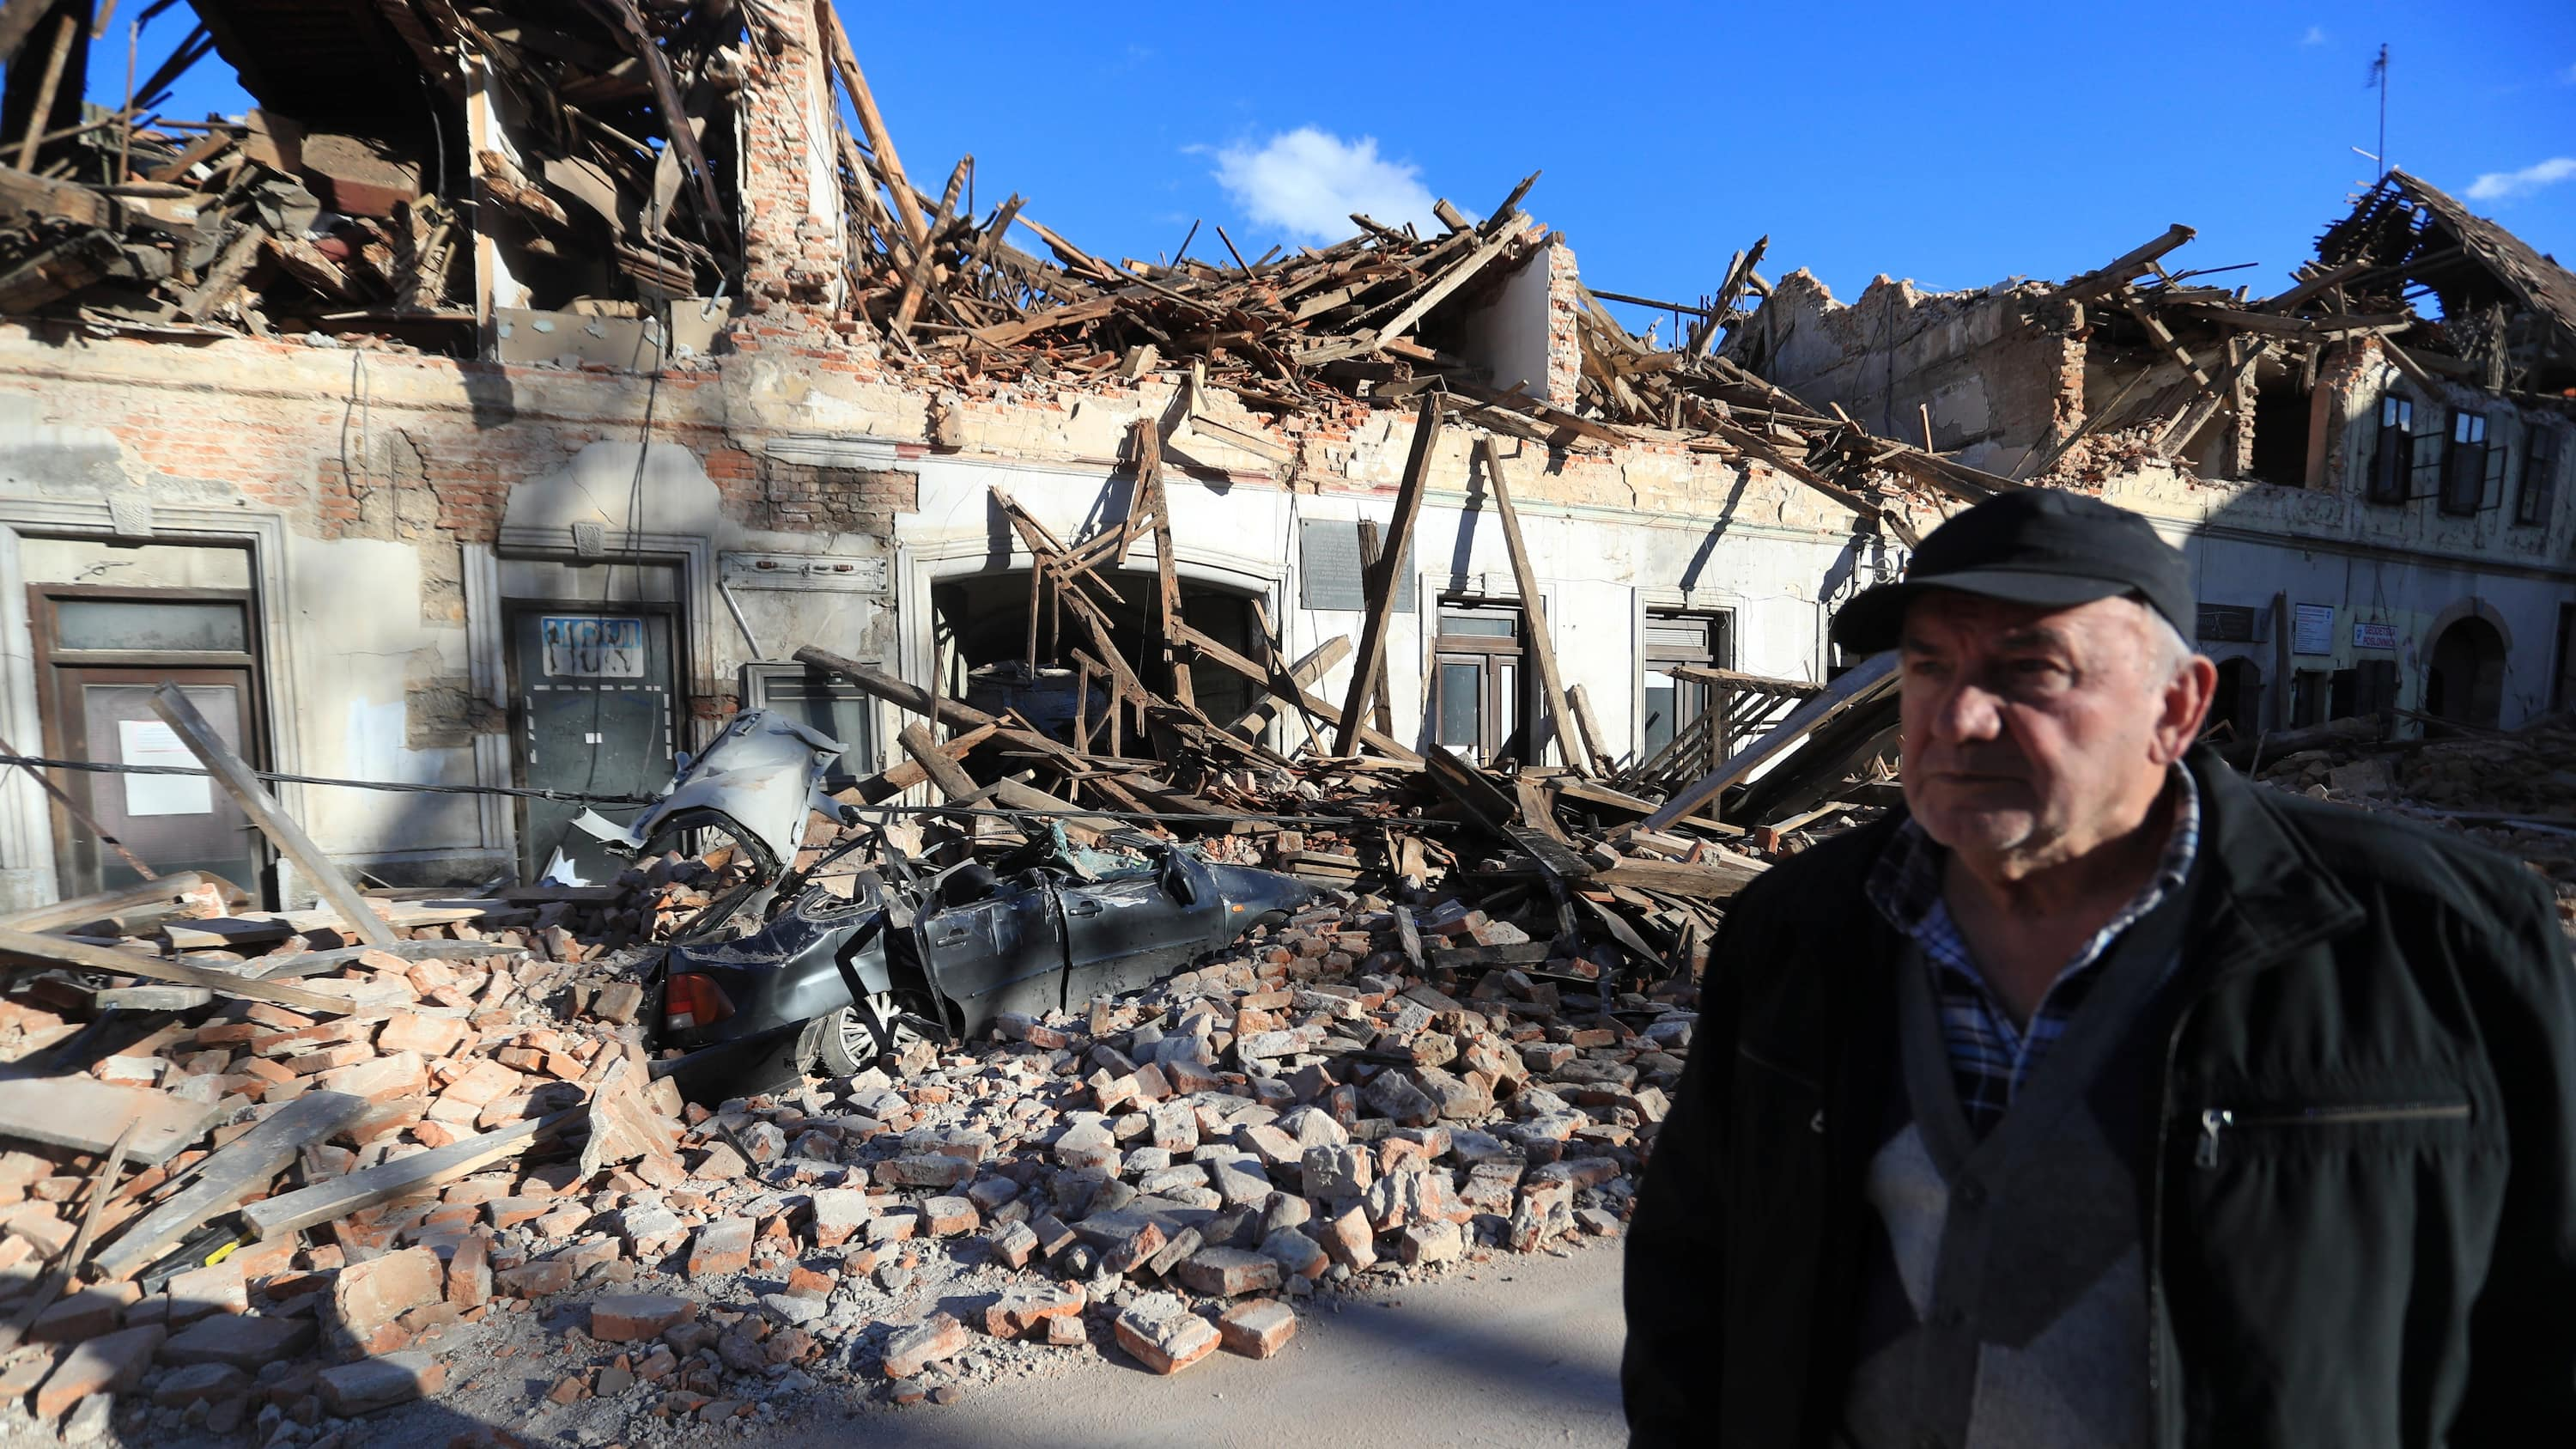 7 Reported Dead After Strong Earthquake Hits Central Croatia Cbc News